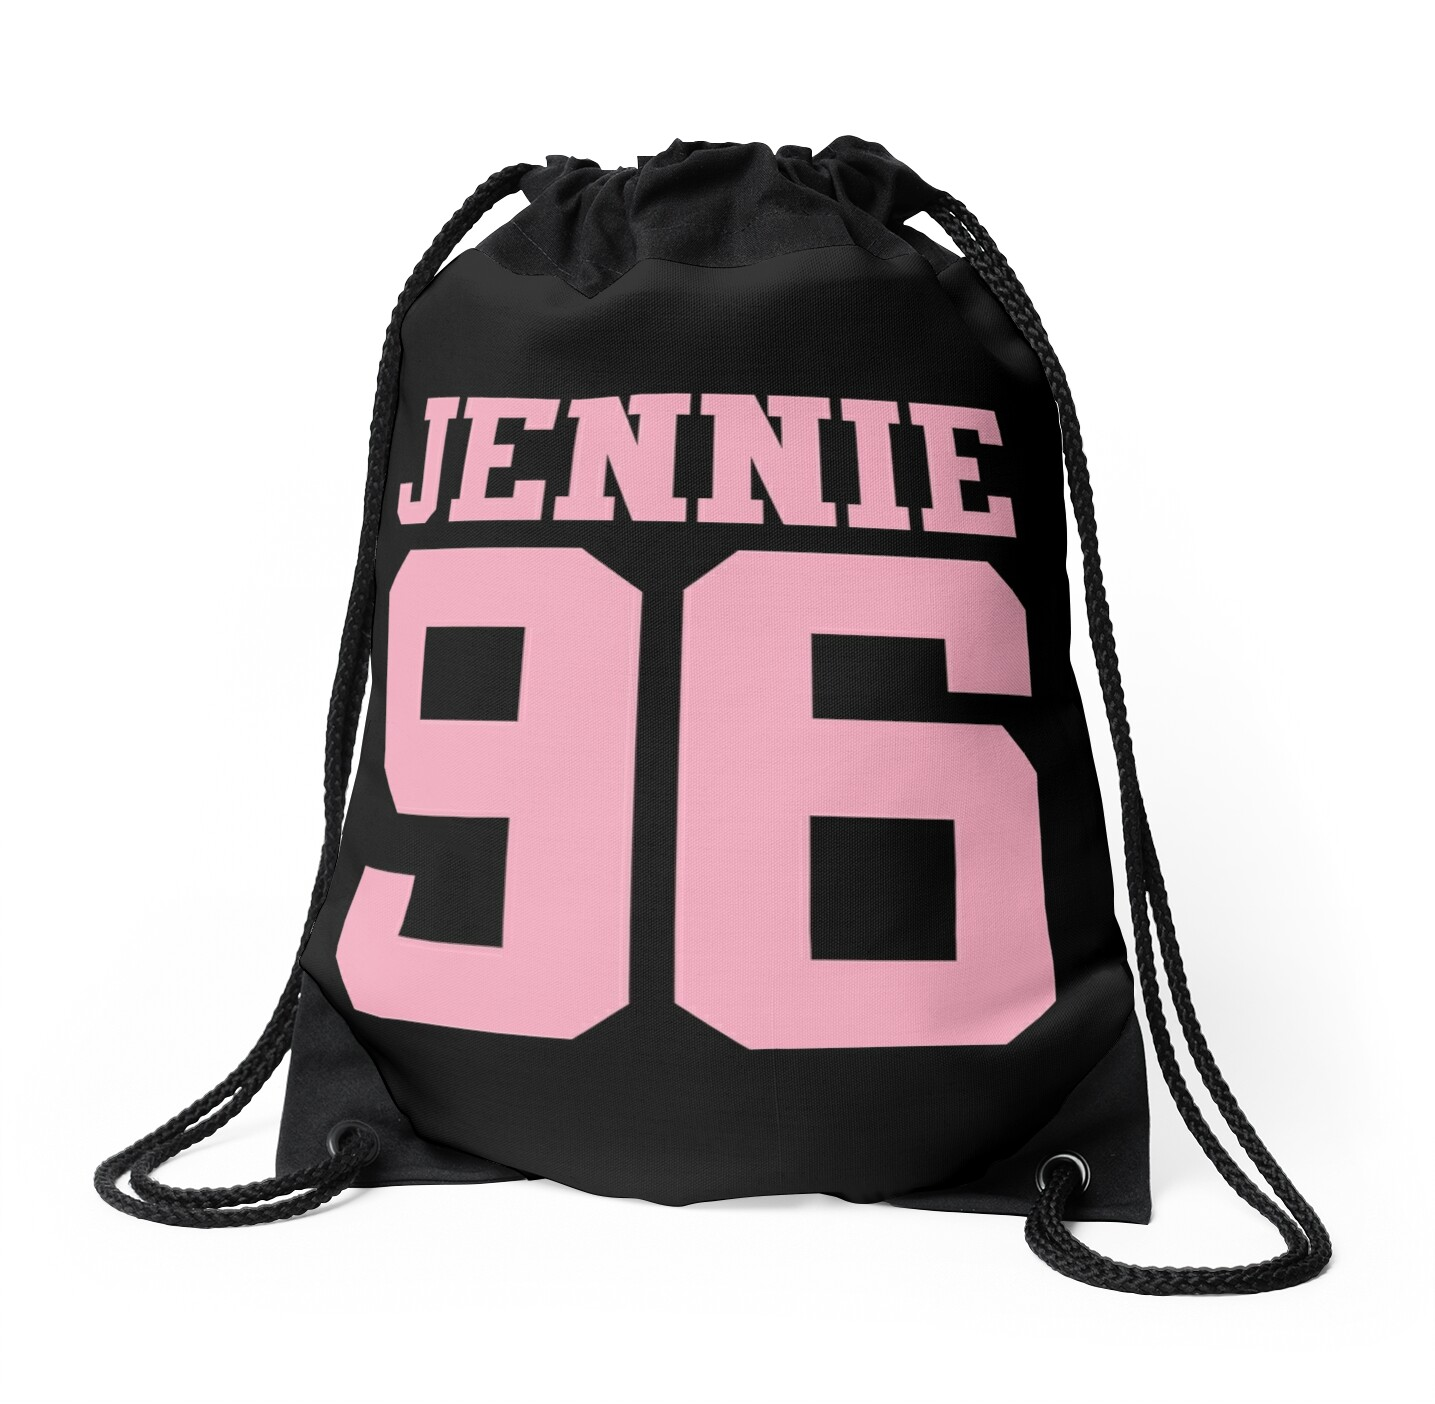 BLACKPINK Jennie 96 (Pink)